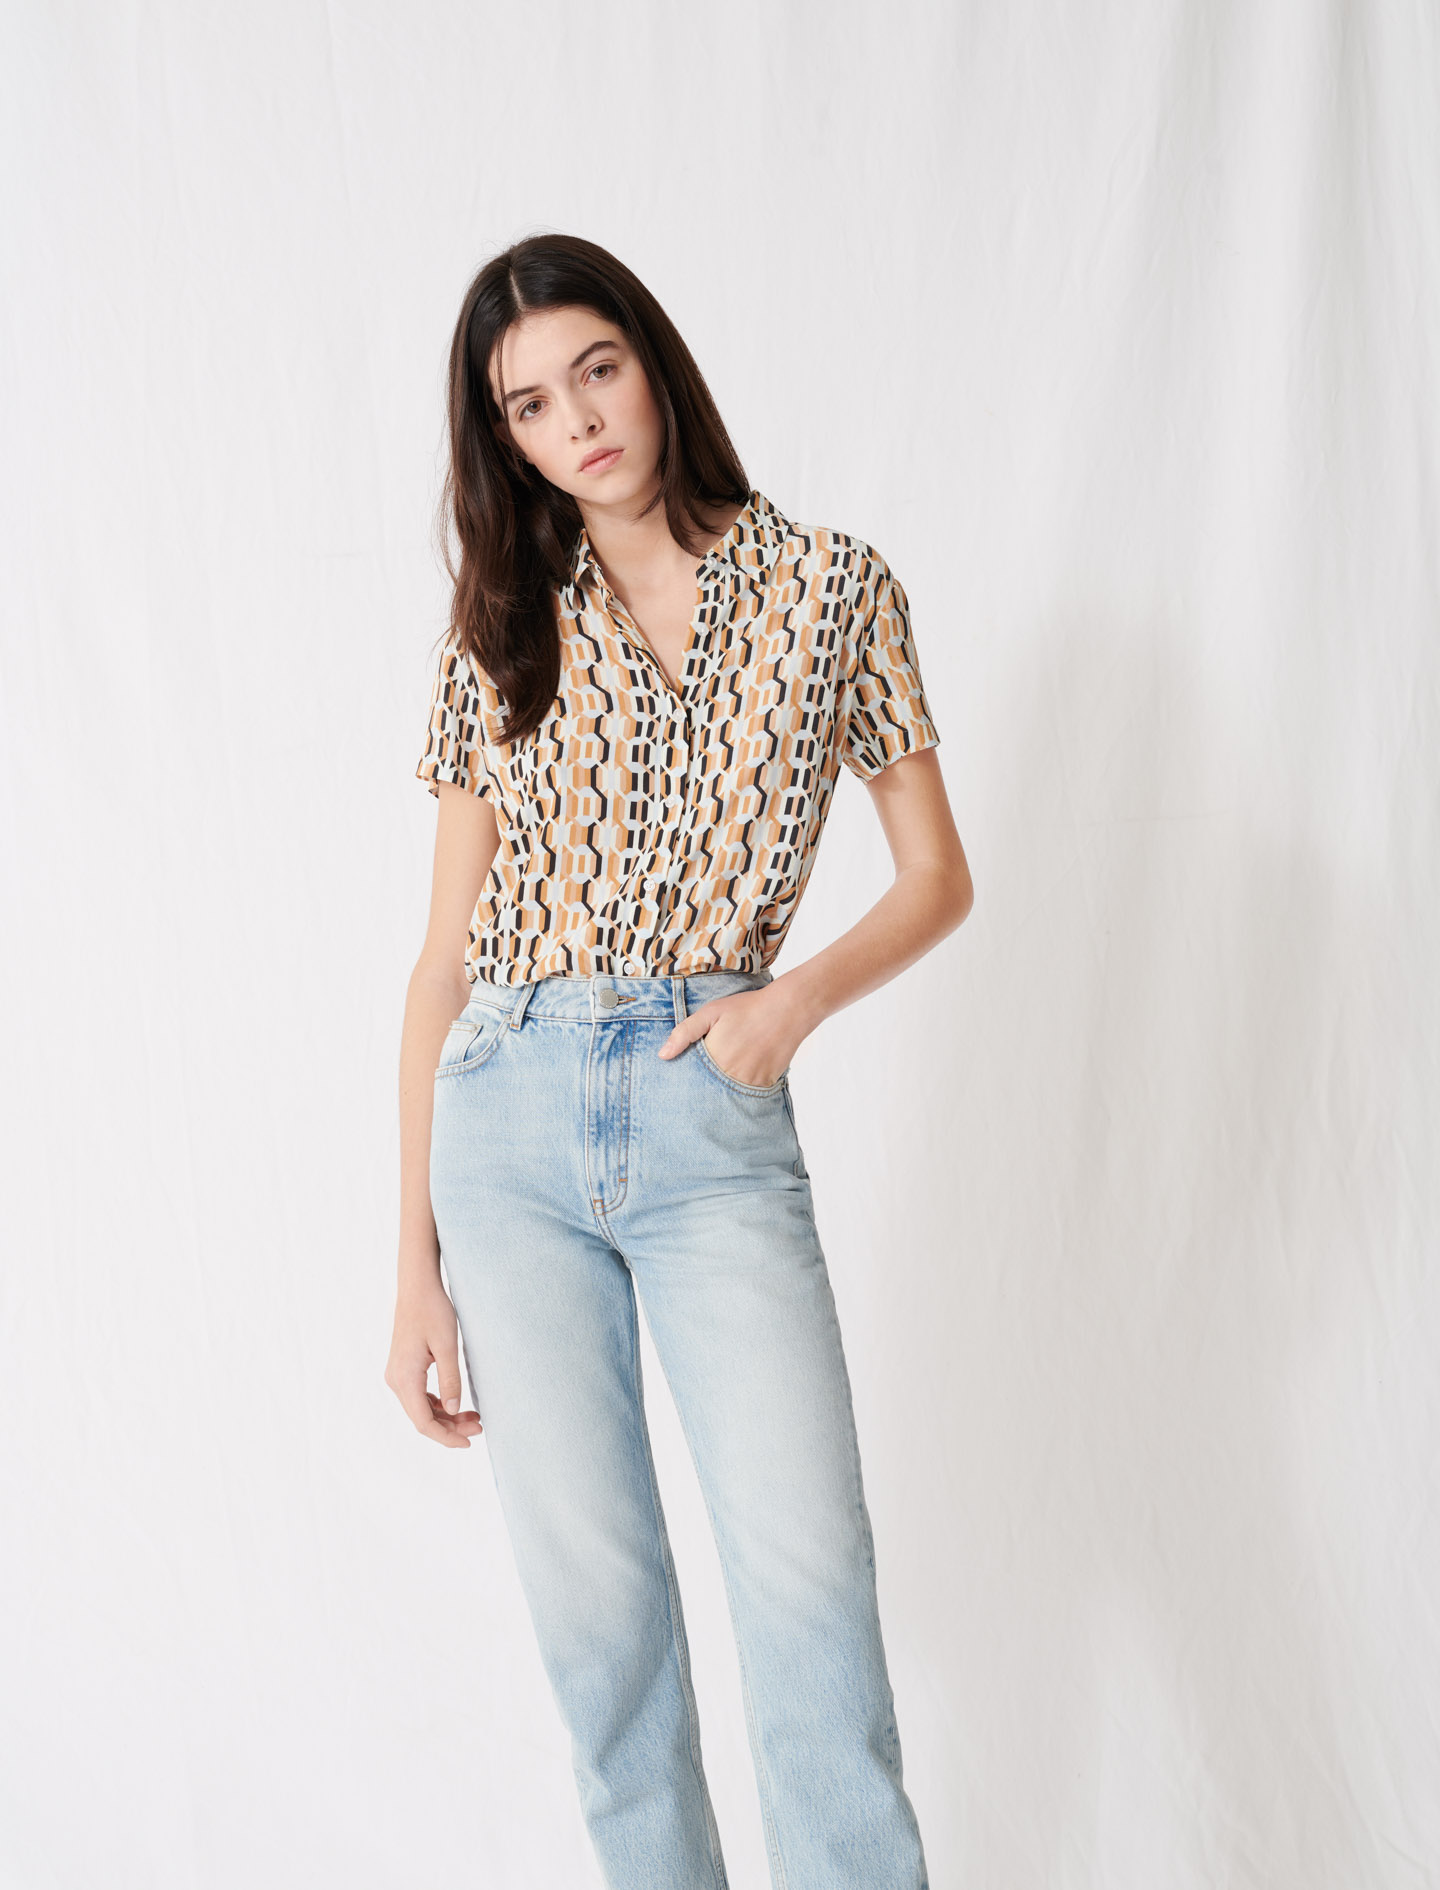 Mum-style high-waisted jeans - Blue